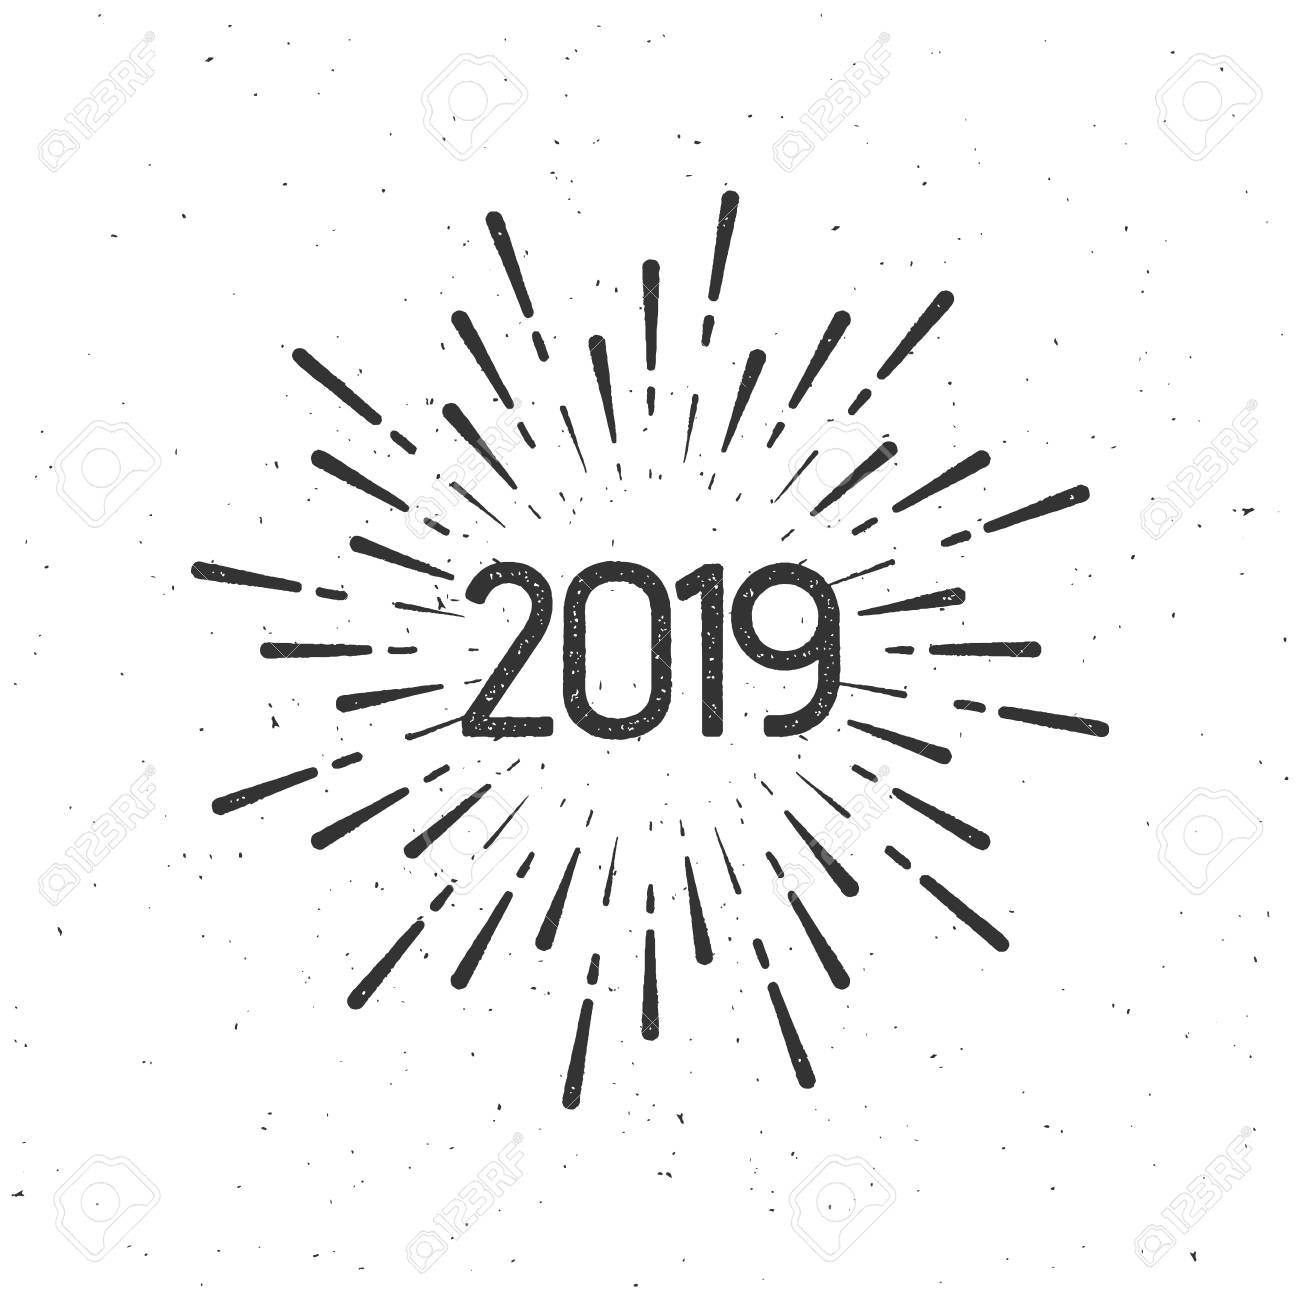 Happy 2019 >> Happy 2019 New Year Holiday Vector Illustration With Numbers